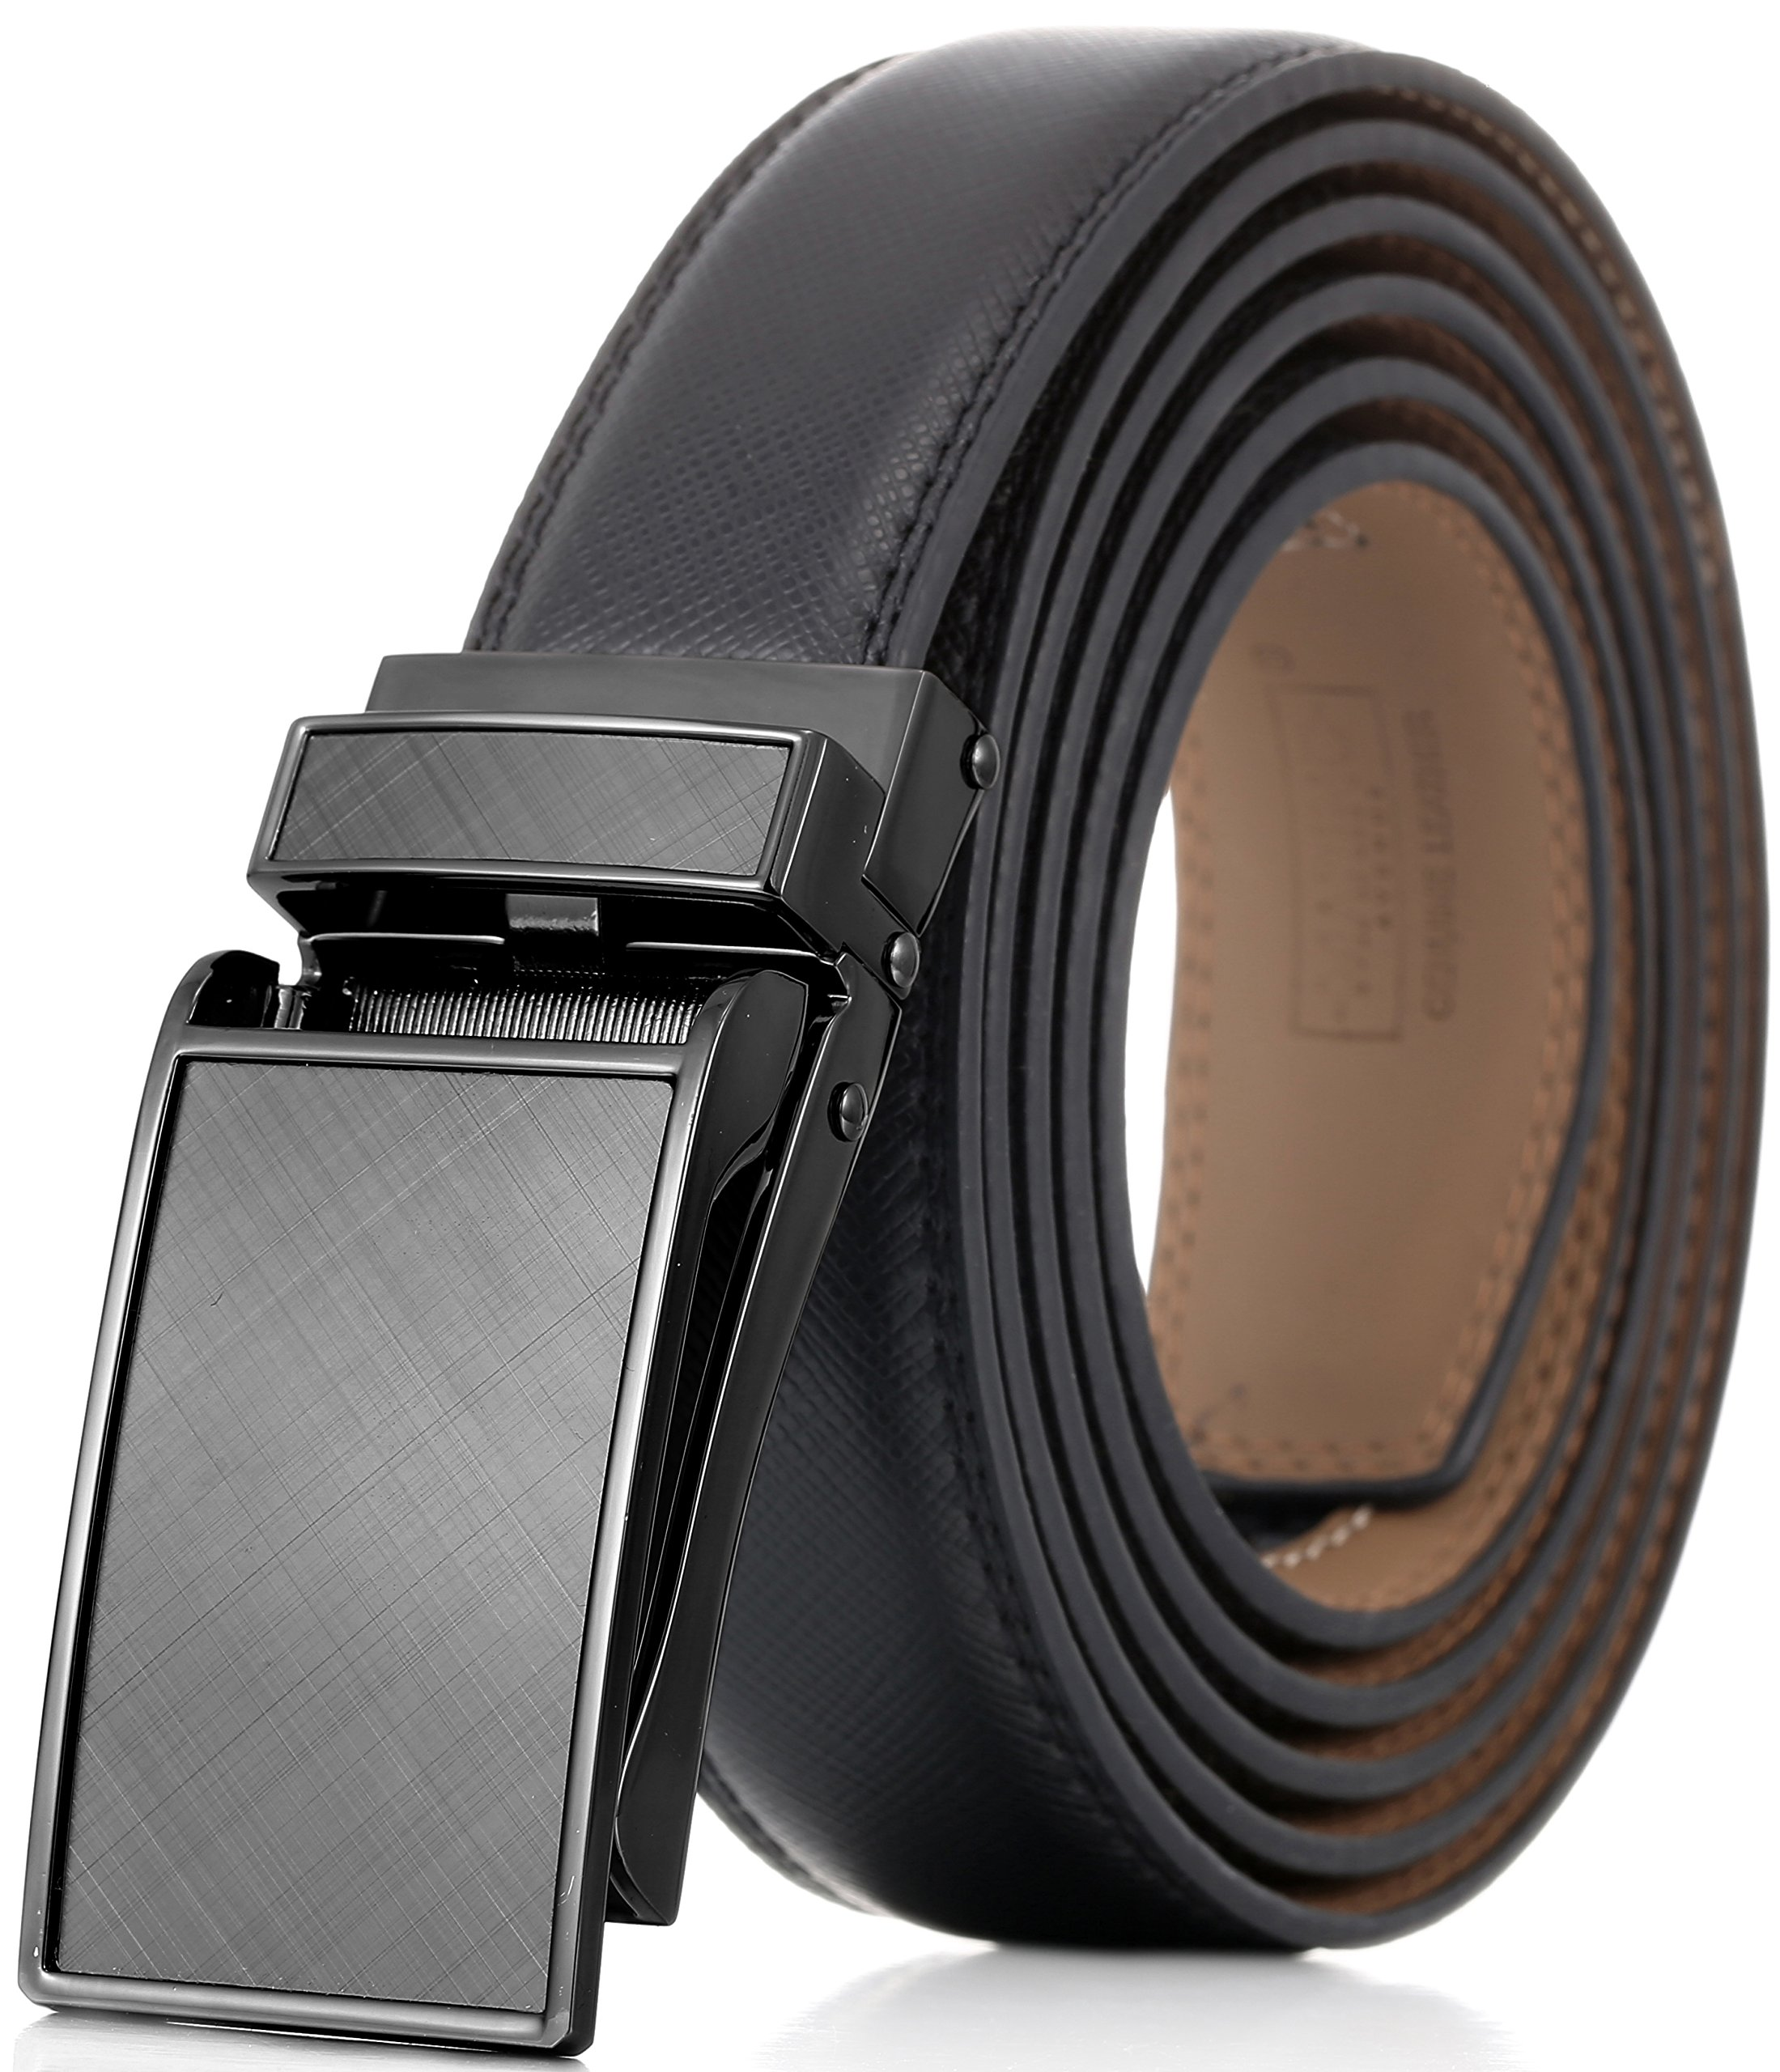 290245ed6f8 Marino Avenue Men s Genuine Leather Ratchet Dress Belt with Linxx Buckle